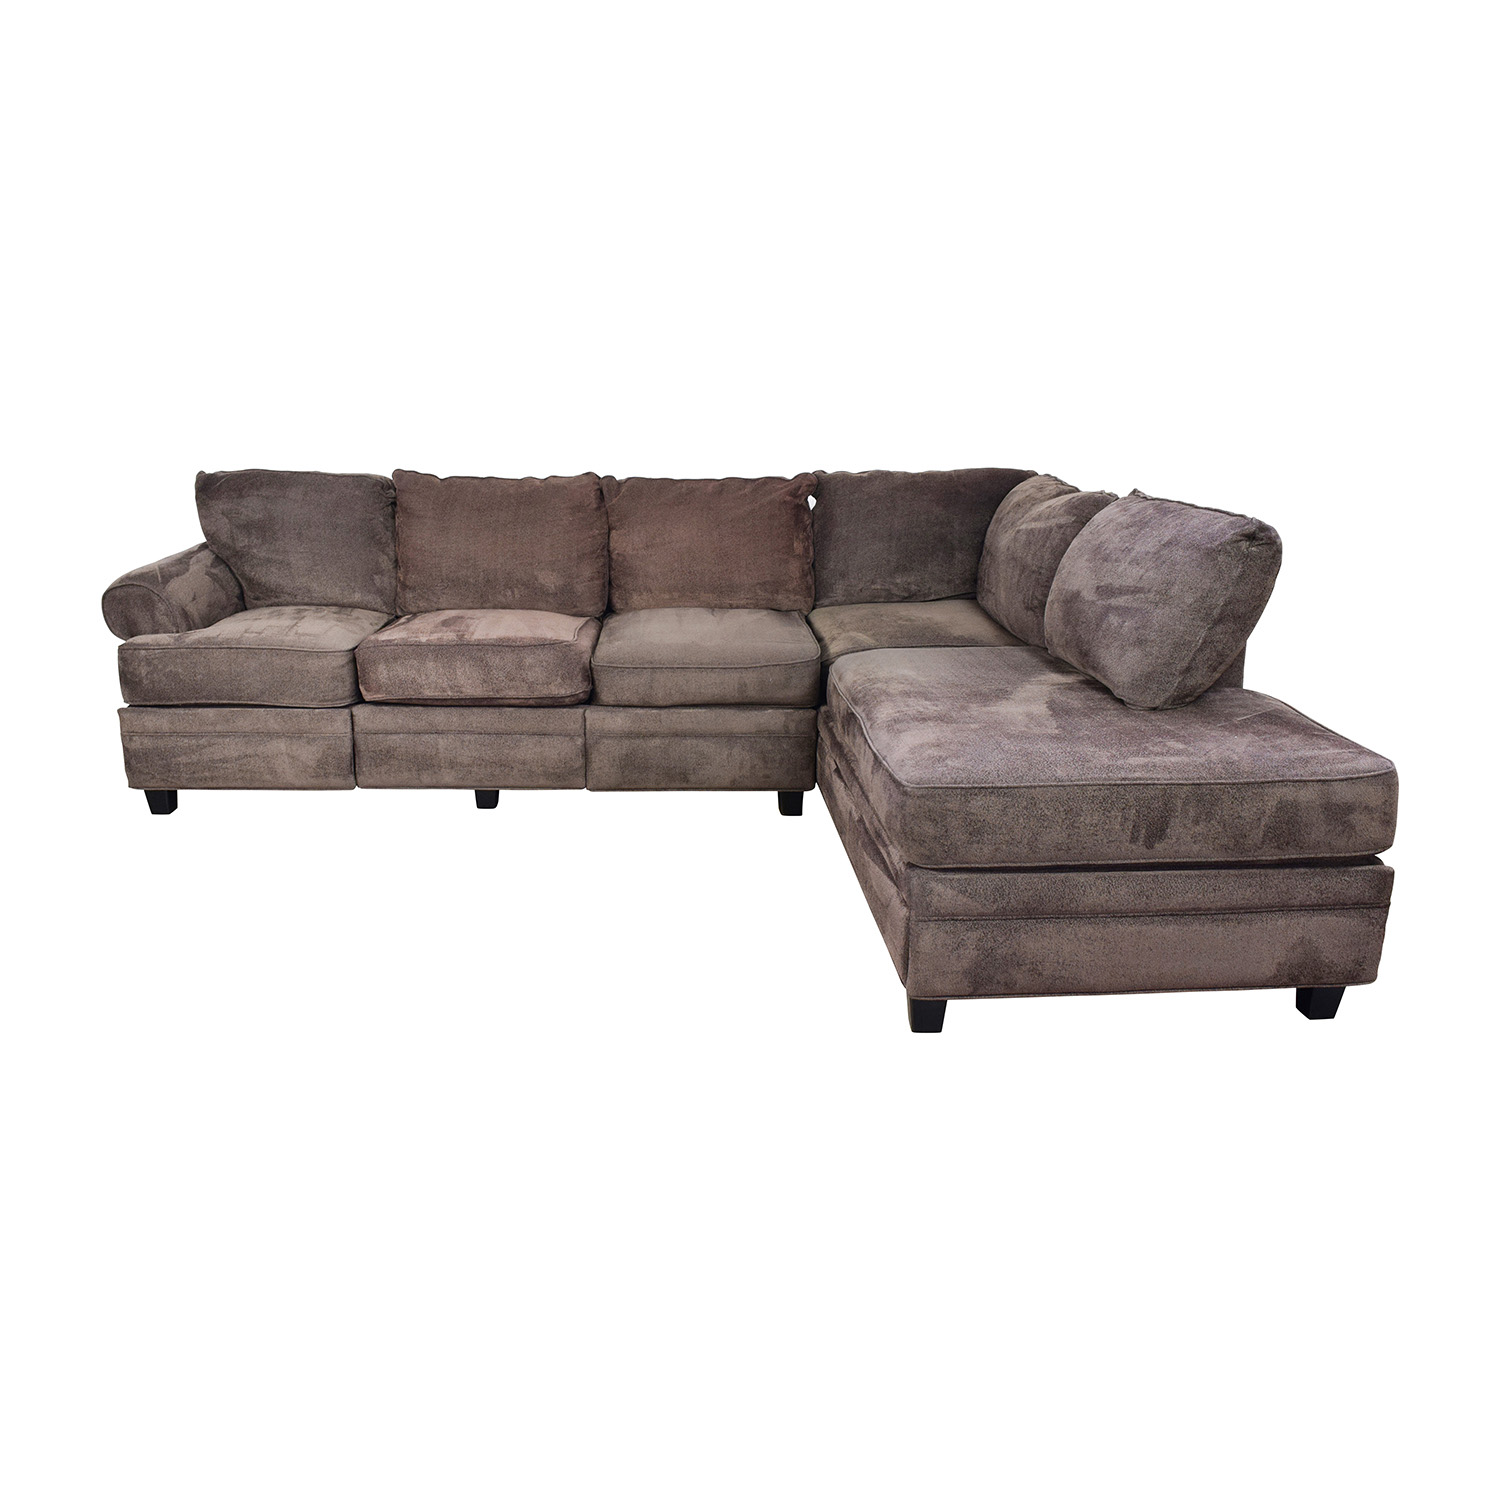 Bob's Furniture Bob's Furniture Brown Sectional with Storage second hand